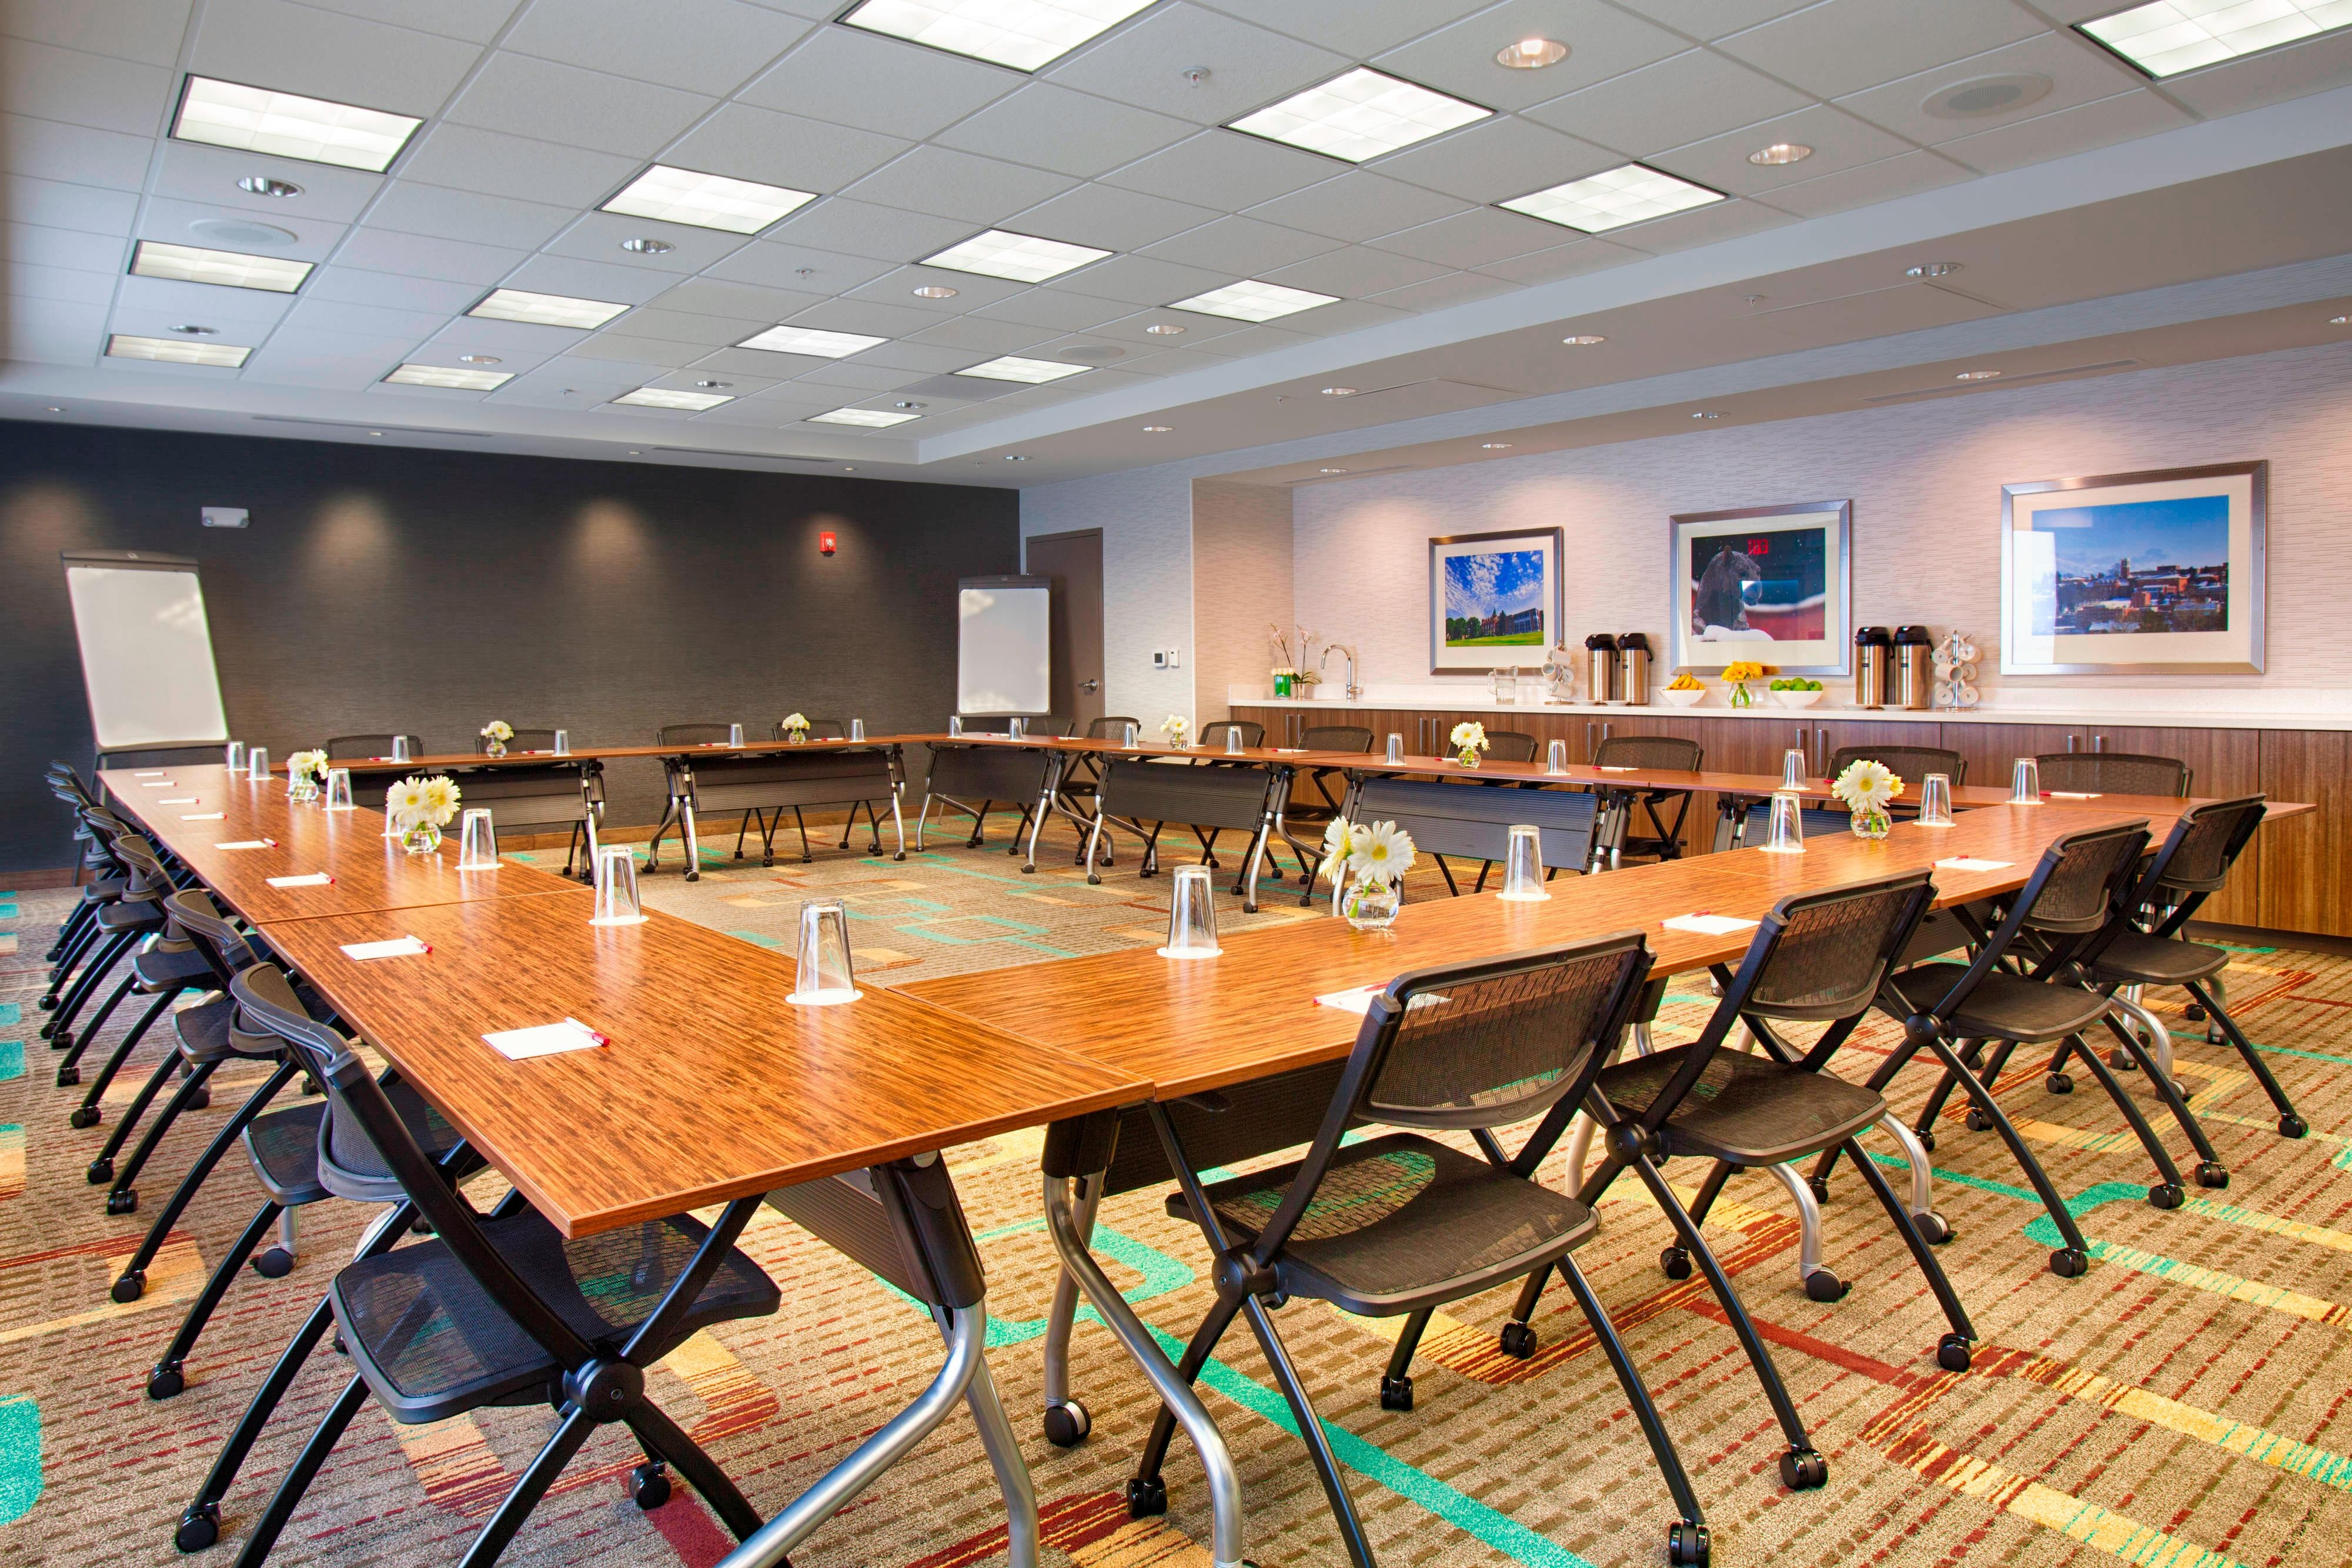 Residence Inn Pullman, Washington Extended Stay Hotel Meeting Room